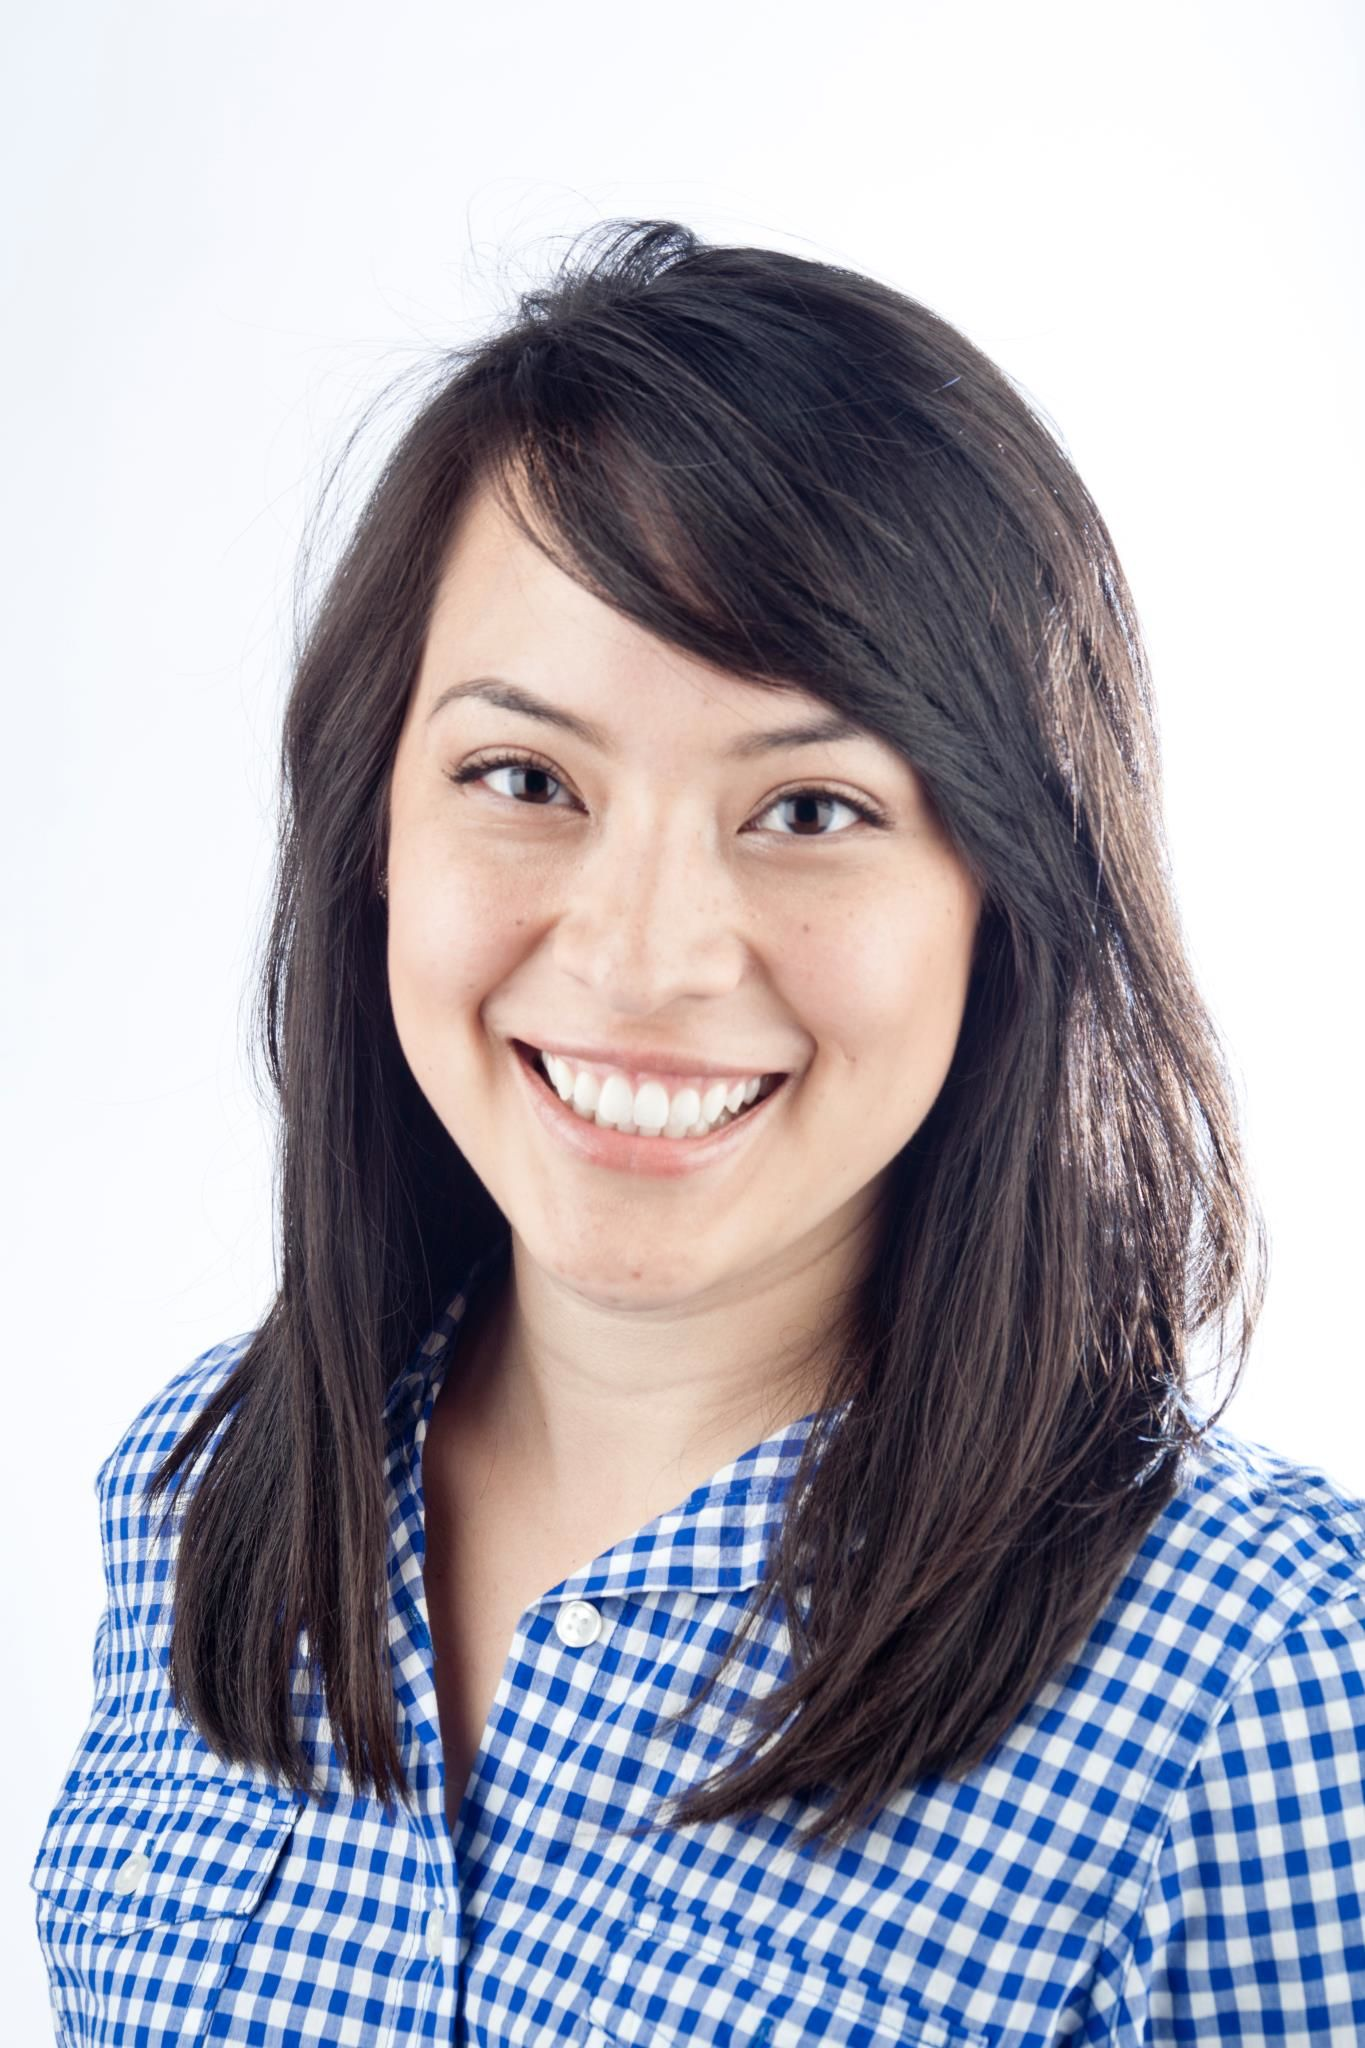 Erica Mendez Babcock is a design editor at the Missourian. She supervises the design of the print edition, special sections and special projects. To learn more about Erica, visit her profile.